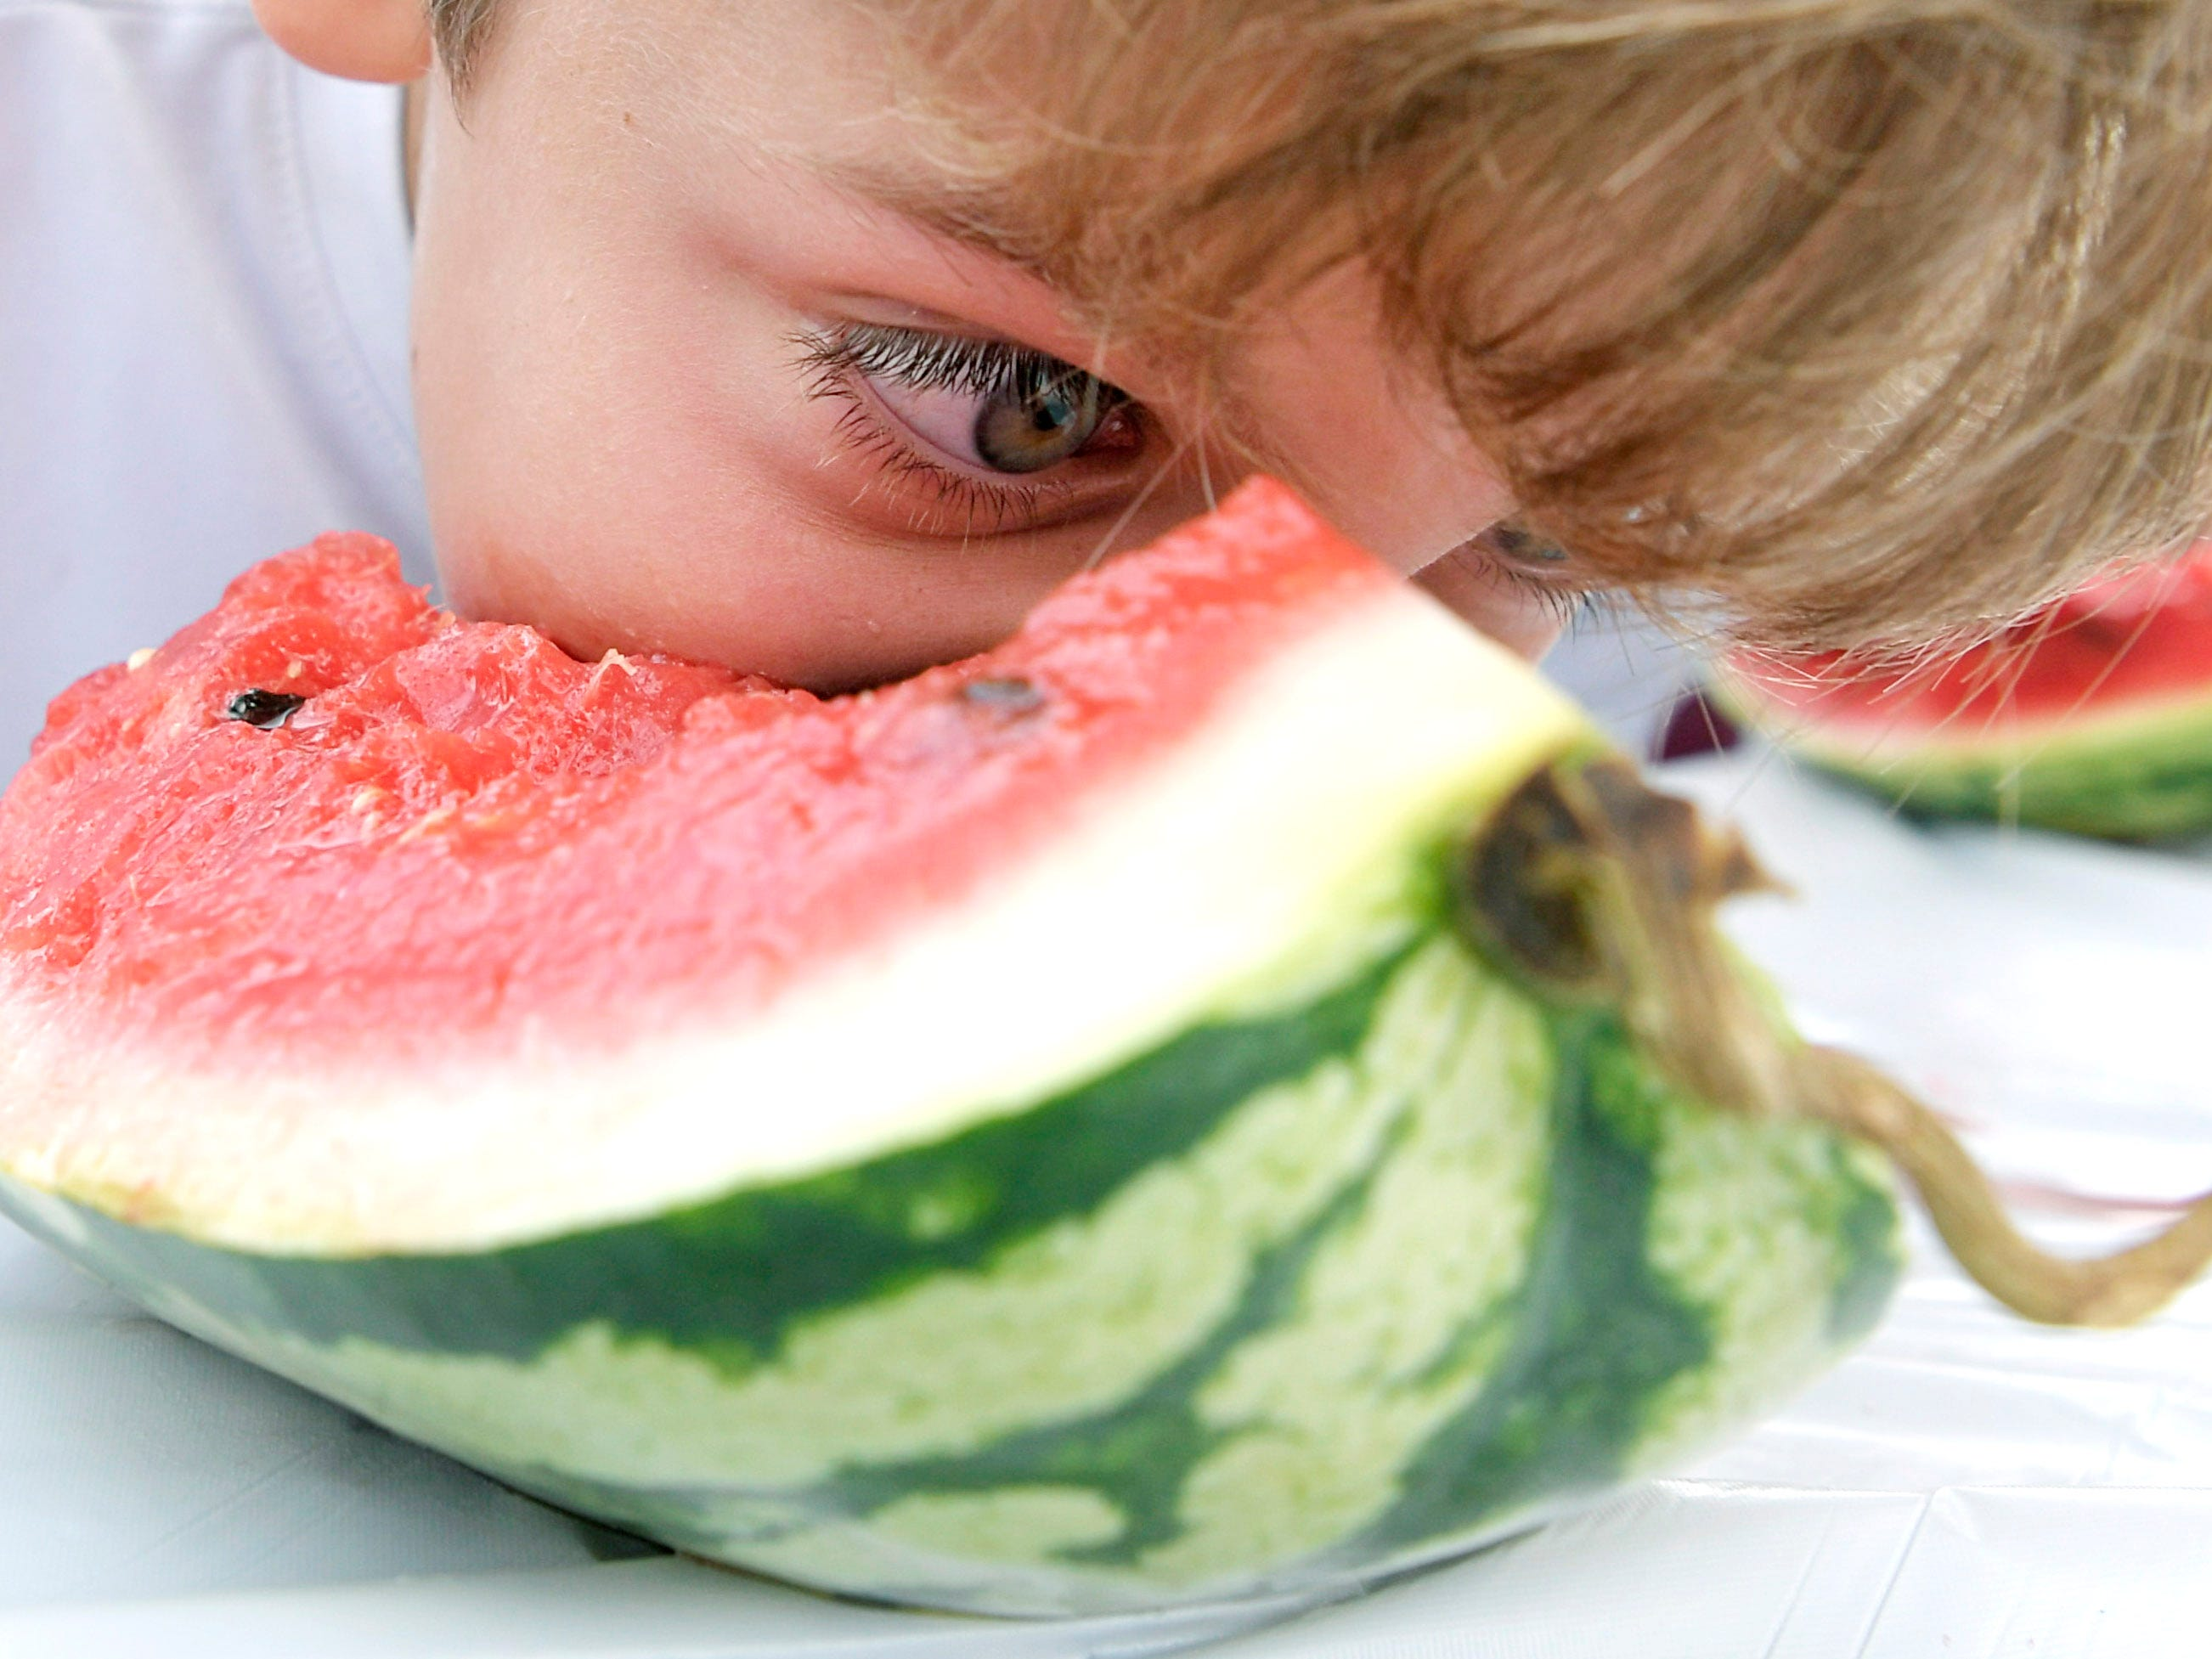 Toby Sarnacke of Franjklin competes in teh Franklin Watermelon Festival's watermelon eating contest at the Franklin Farmers Market on Saturday,  August 18, 2018.